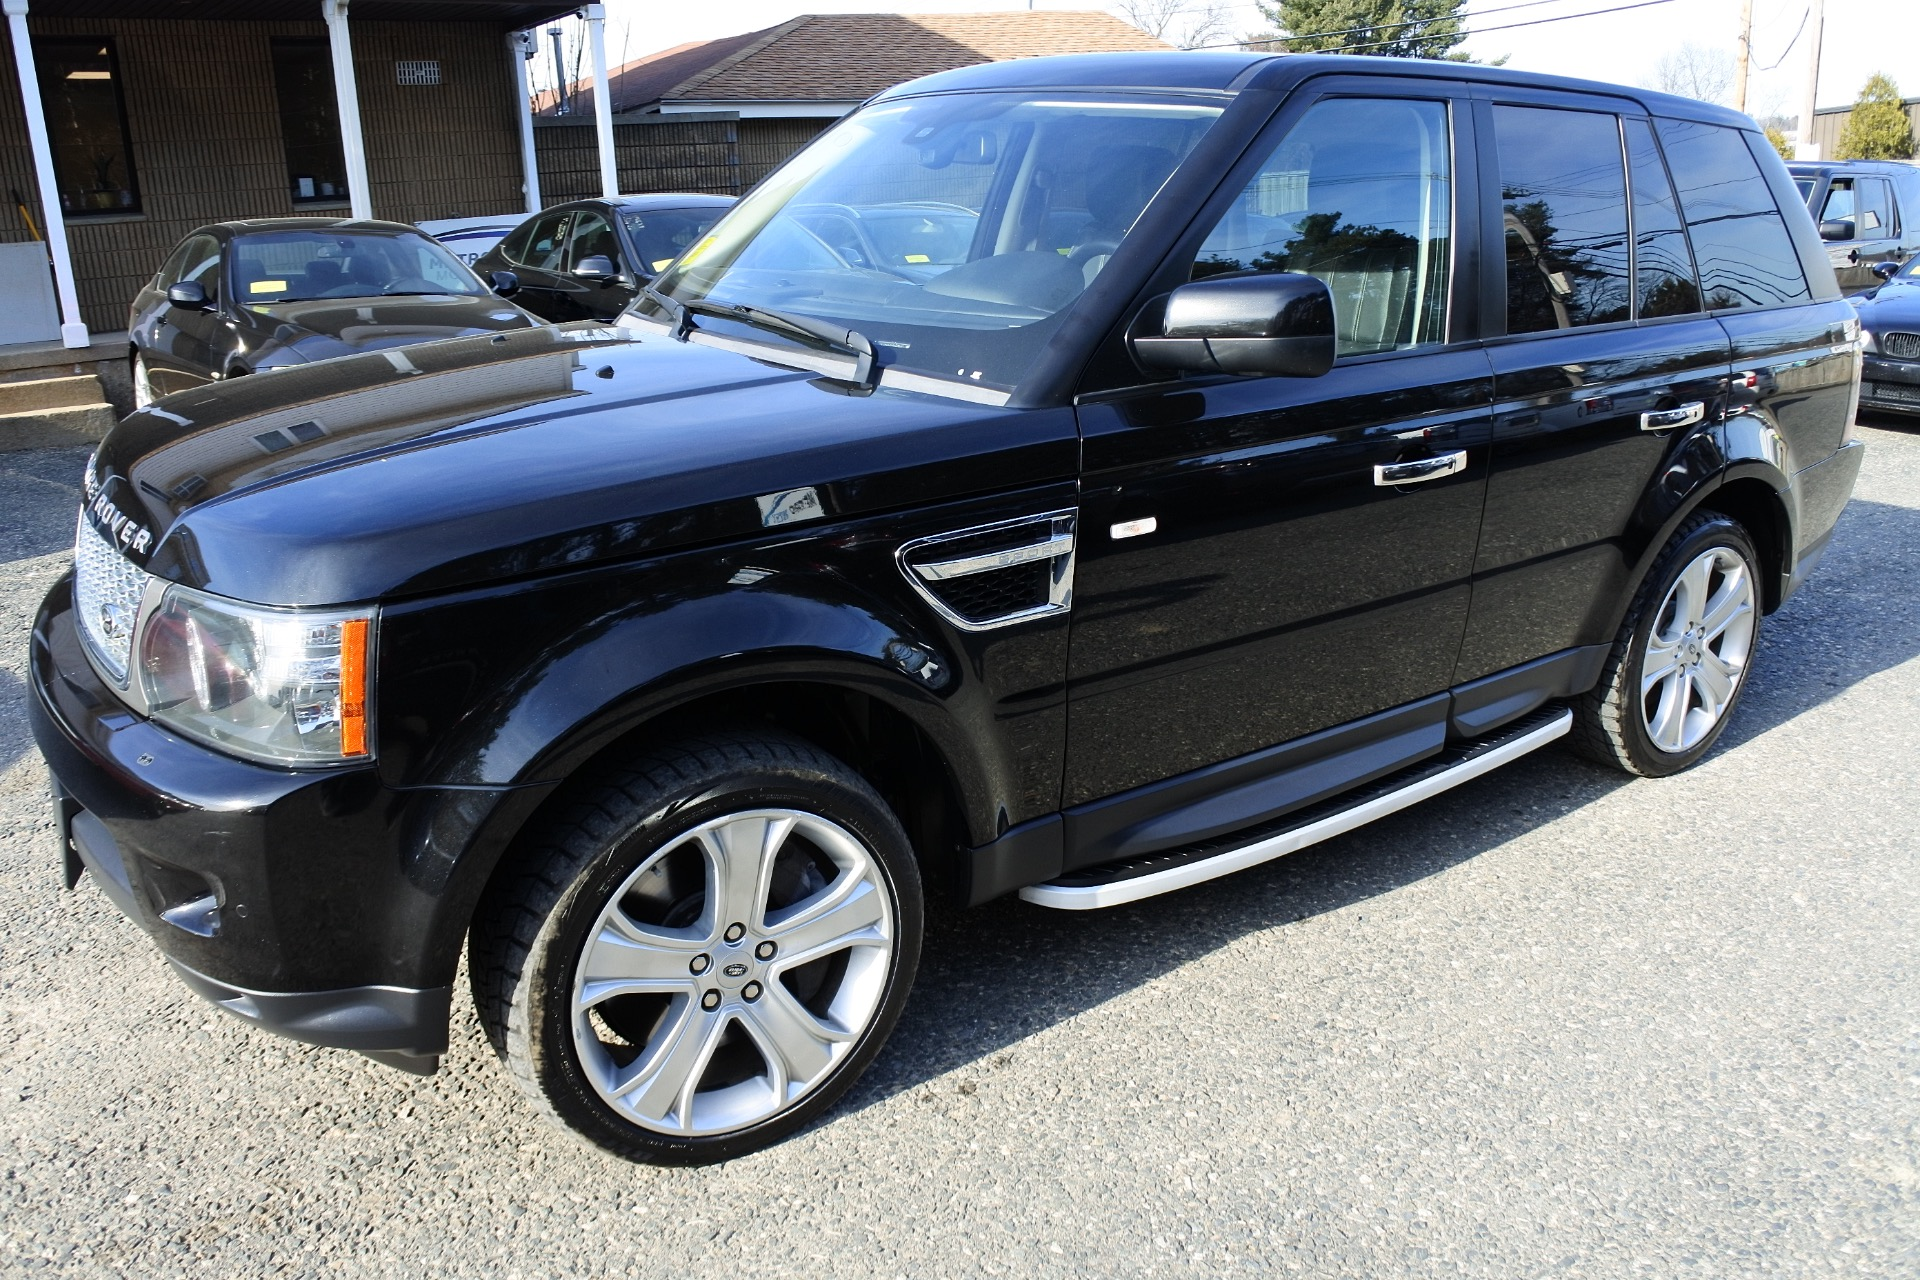 Used 2010 Land Rover Range Rover Sport Supercharged Used 2010 Land Rover Range Rover Sport Supercharged for sale  at Metro West Motorcars LLC in Shrewsbury MA 1